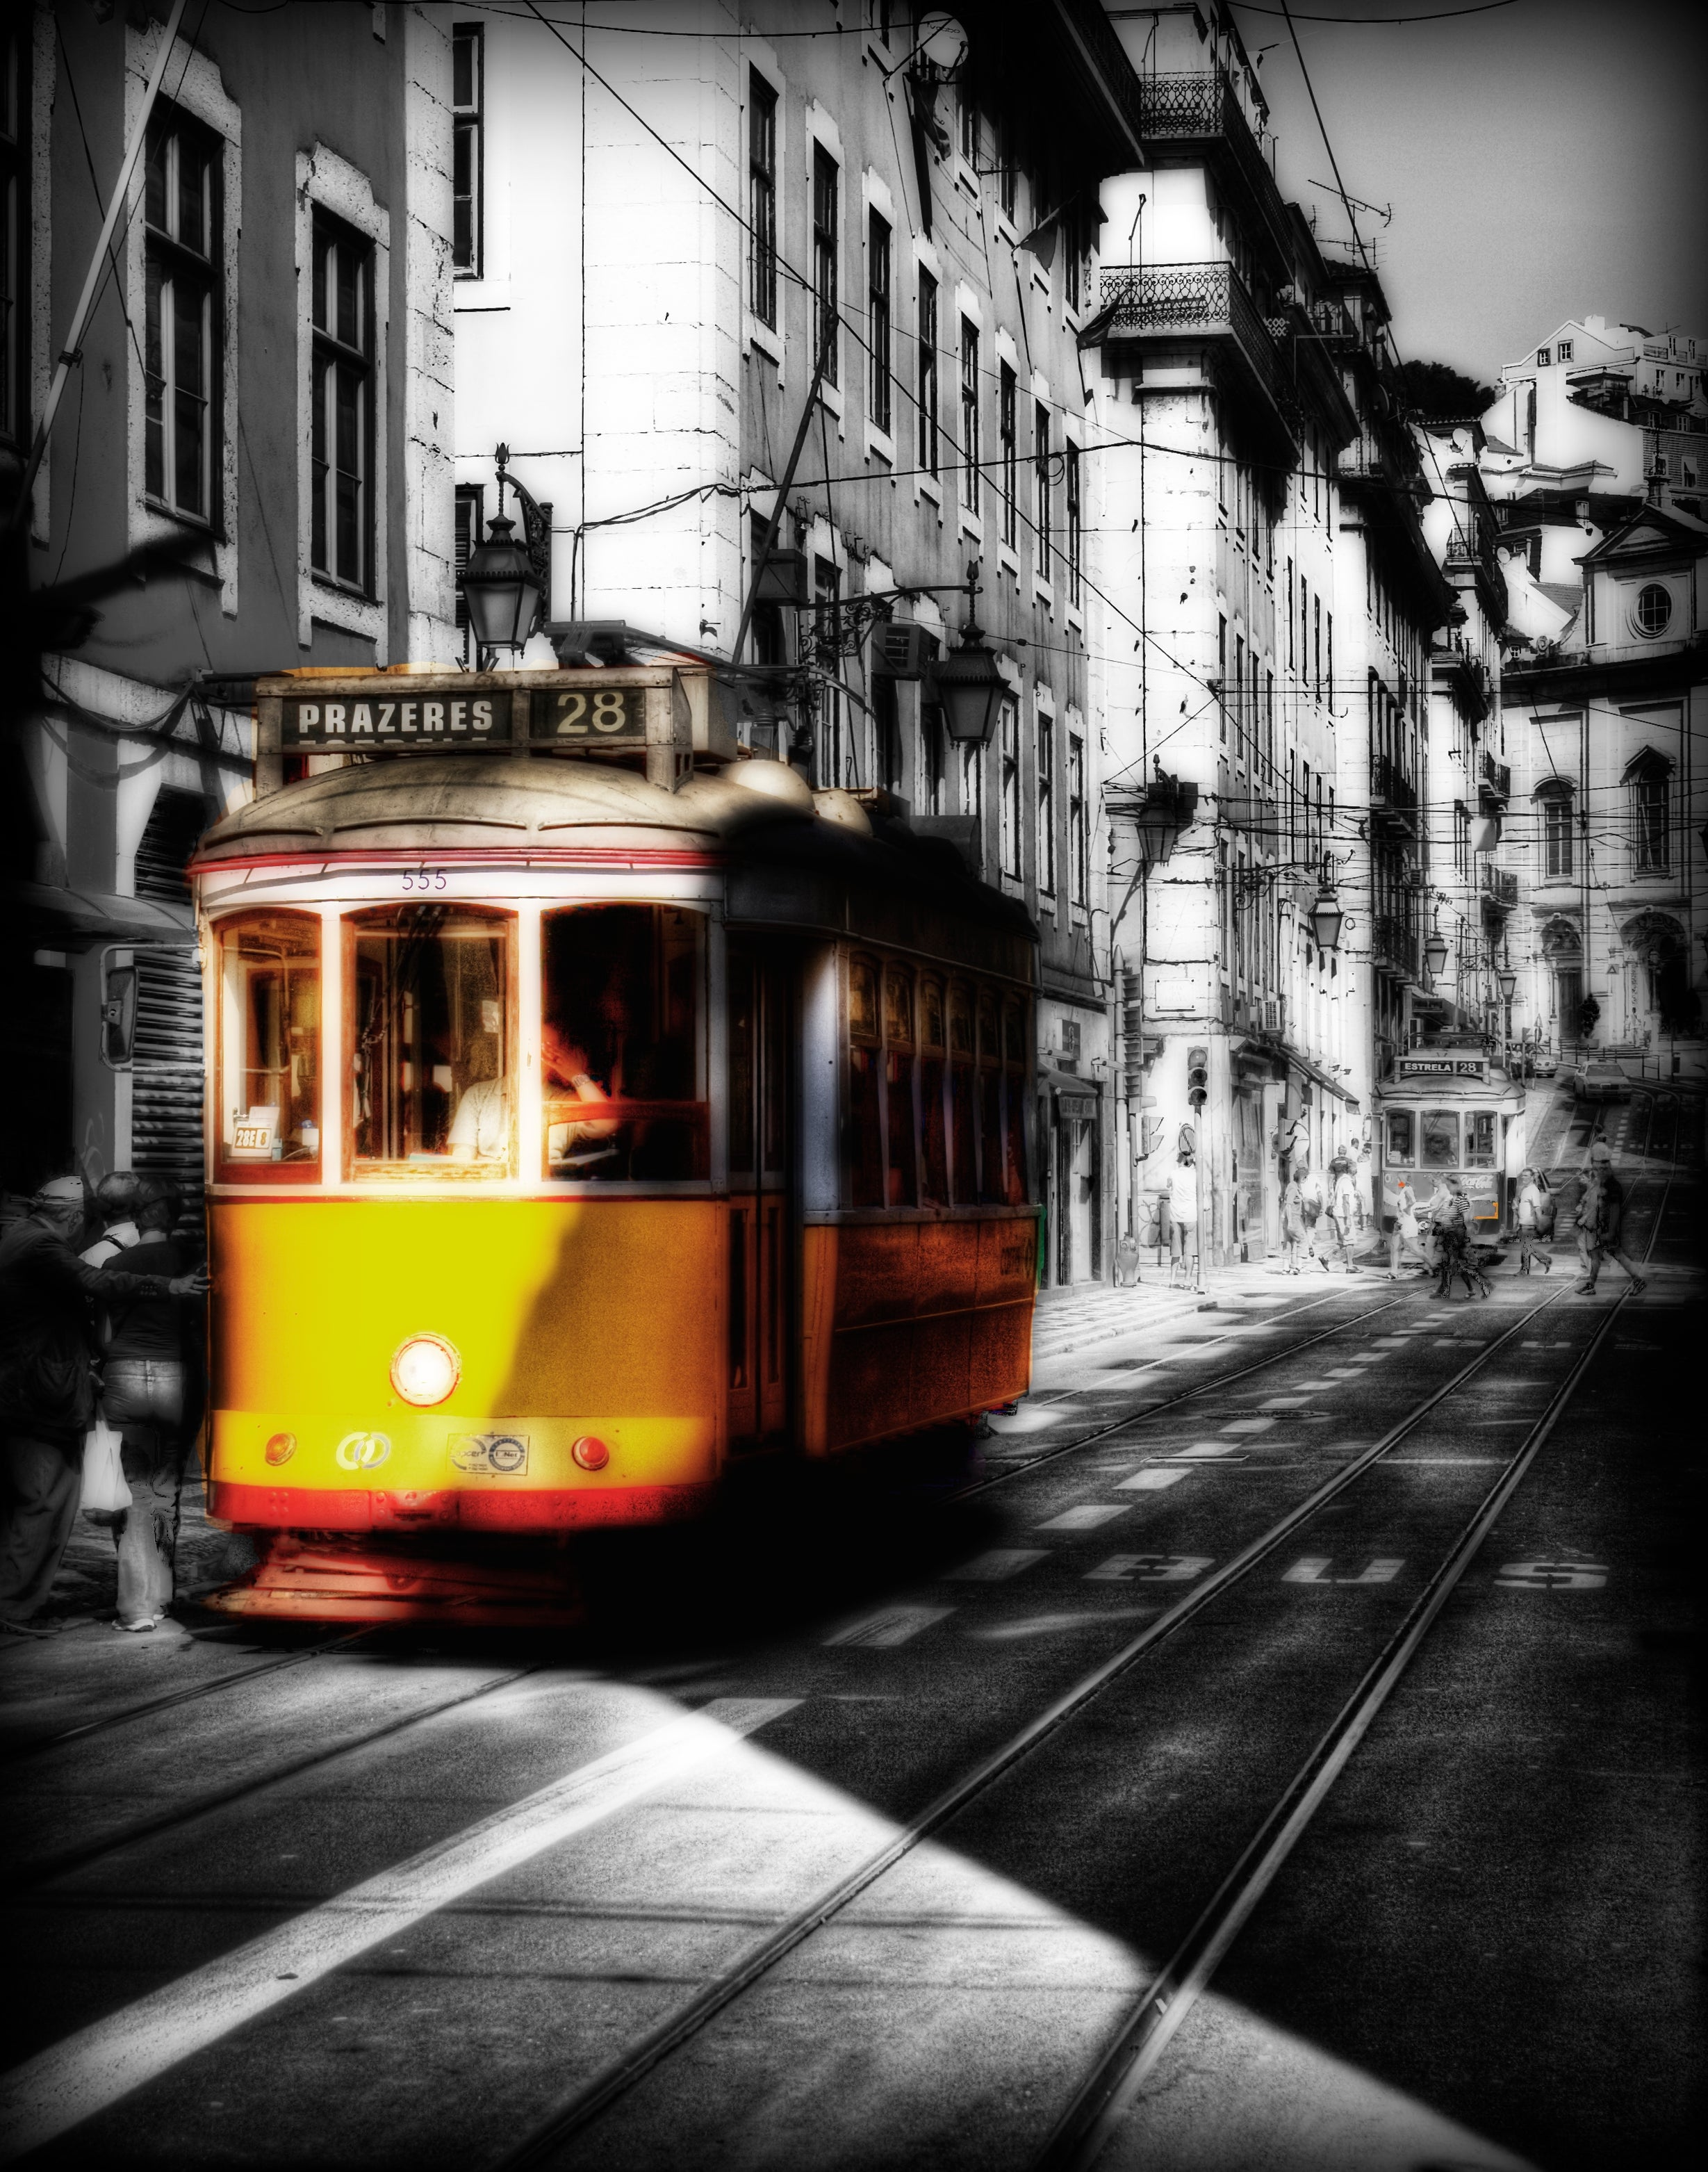 Black And White in Tram 28